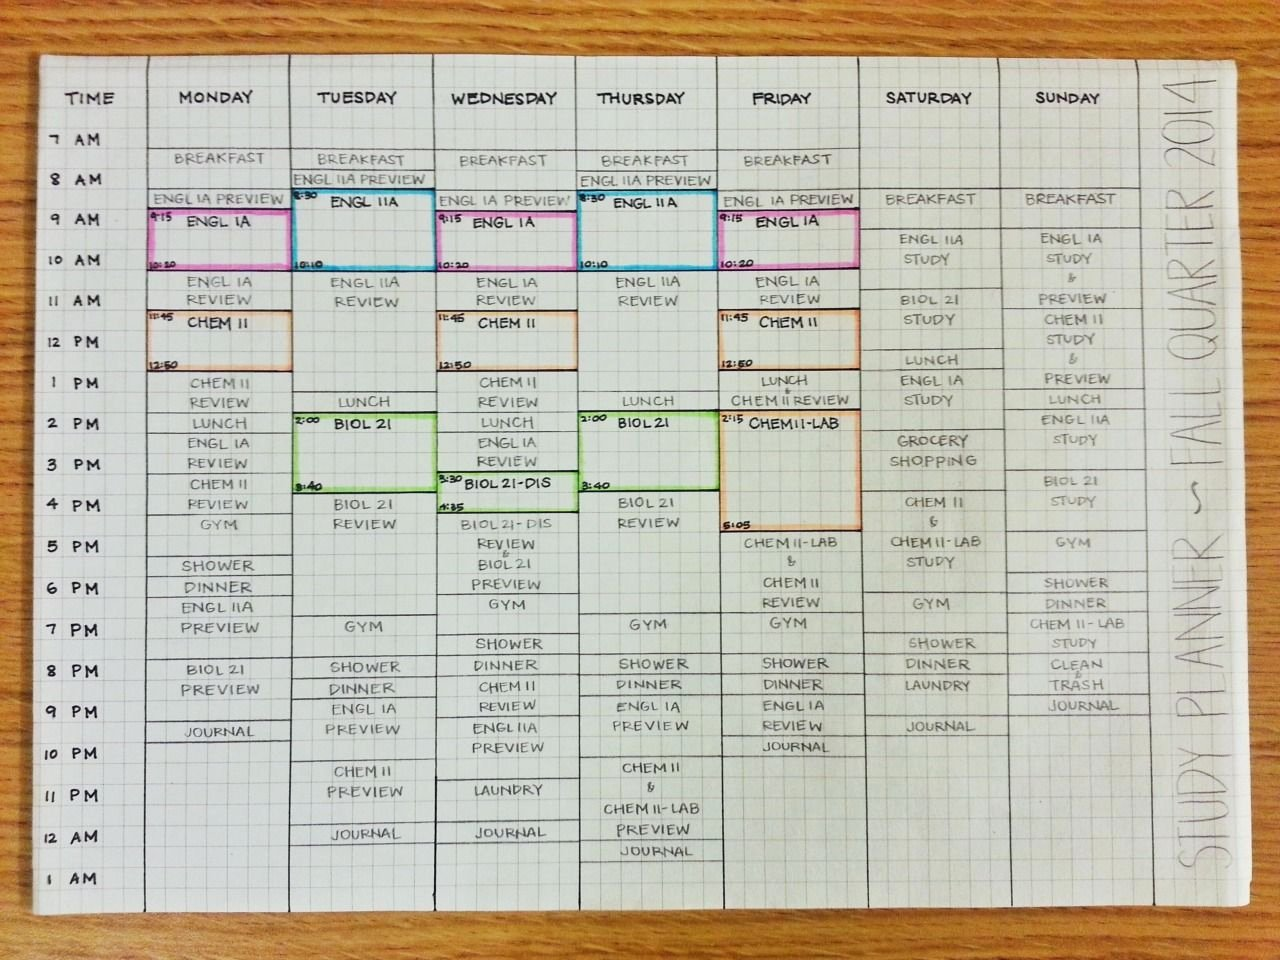 Study Plan Template for Students Beautiful Studyforwhatmatters Updated Study Schedule Study